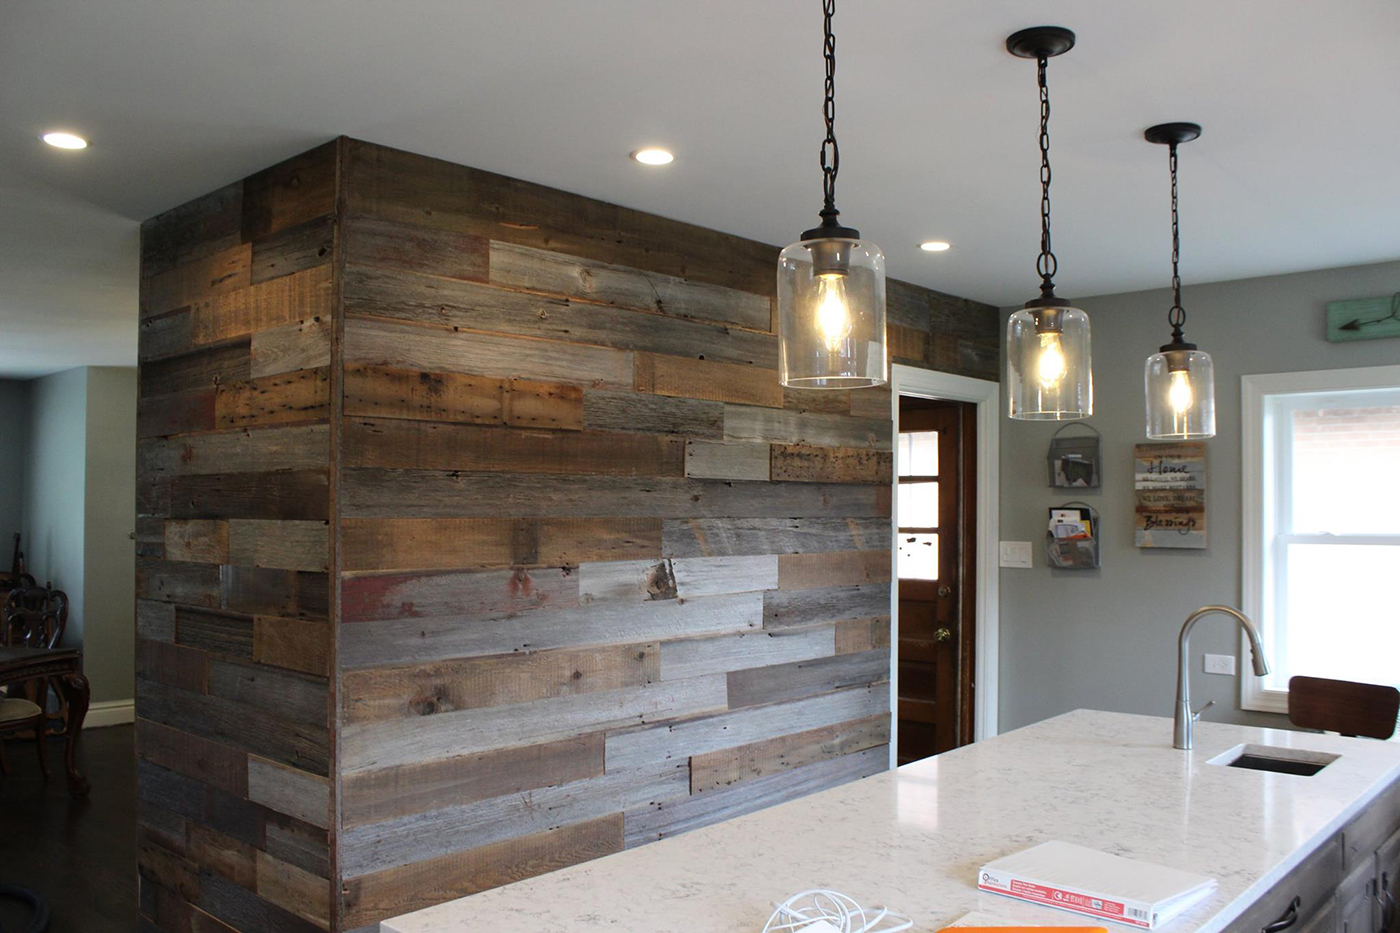 antique old sale appalachian interior barn board reclaimed walls for wood hardwoods